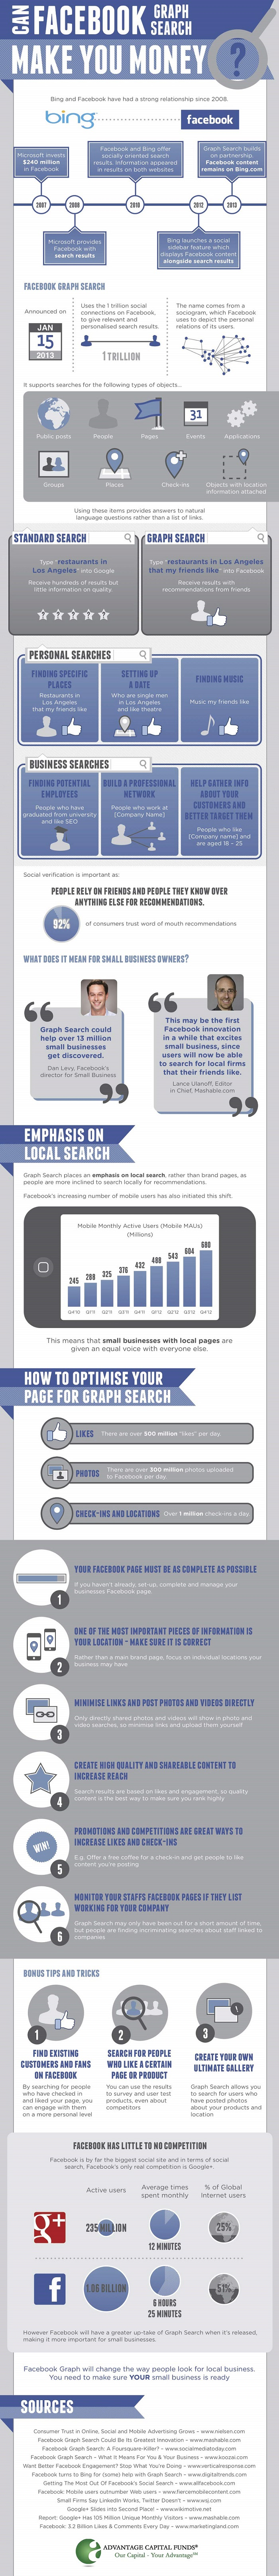 Can Facebook Graph Search Help You Make Money?